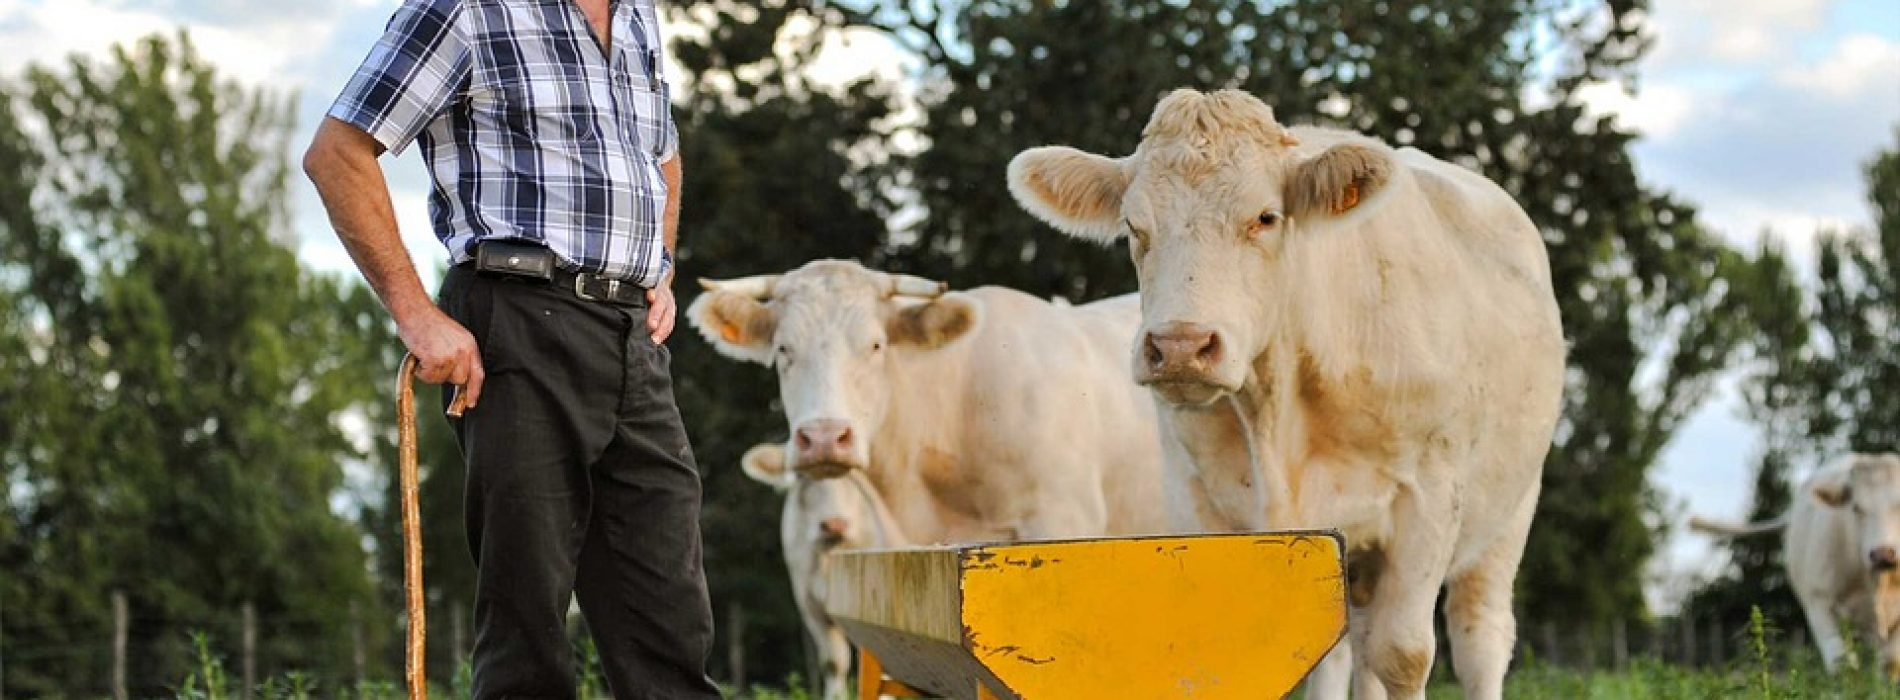 80% of Irish Farmers Have Risky Heart Health